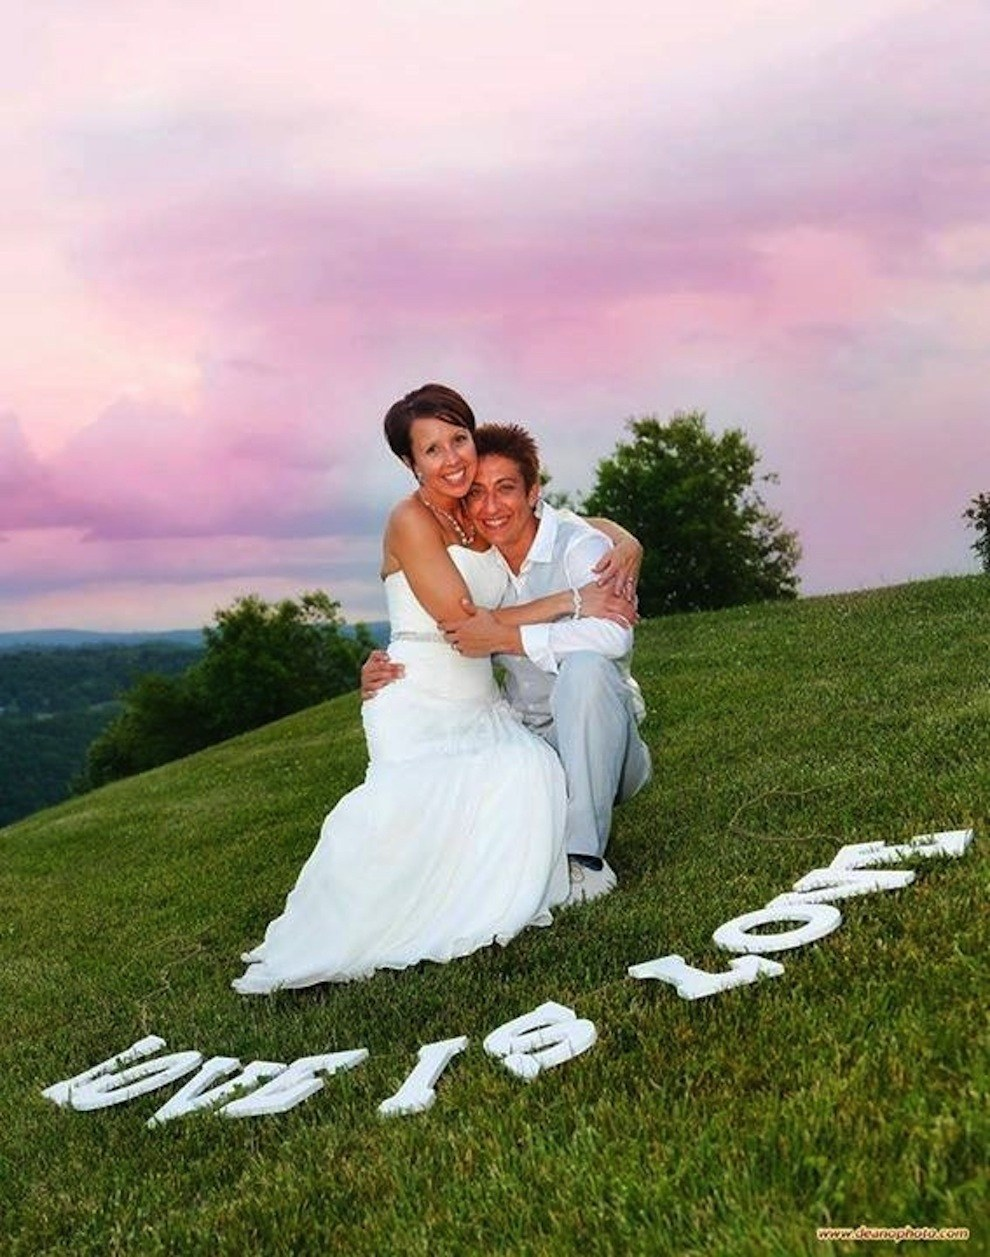 Wedding Photos From All 50 States 50 Days After Nationwide Marriage Equality-1654